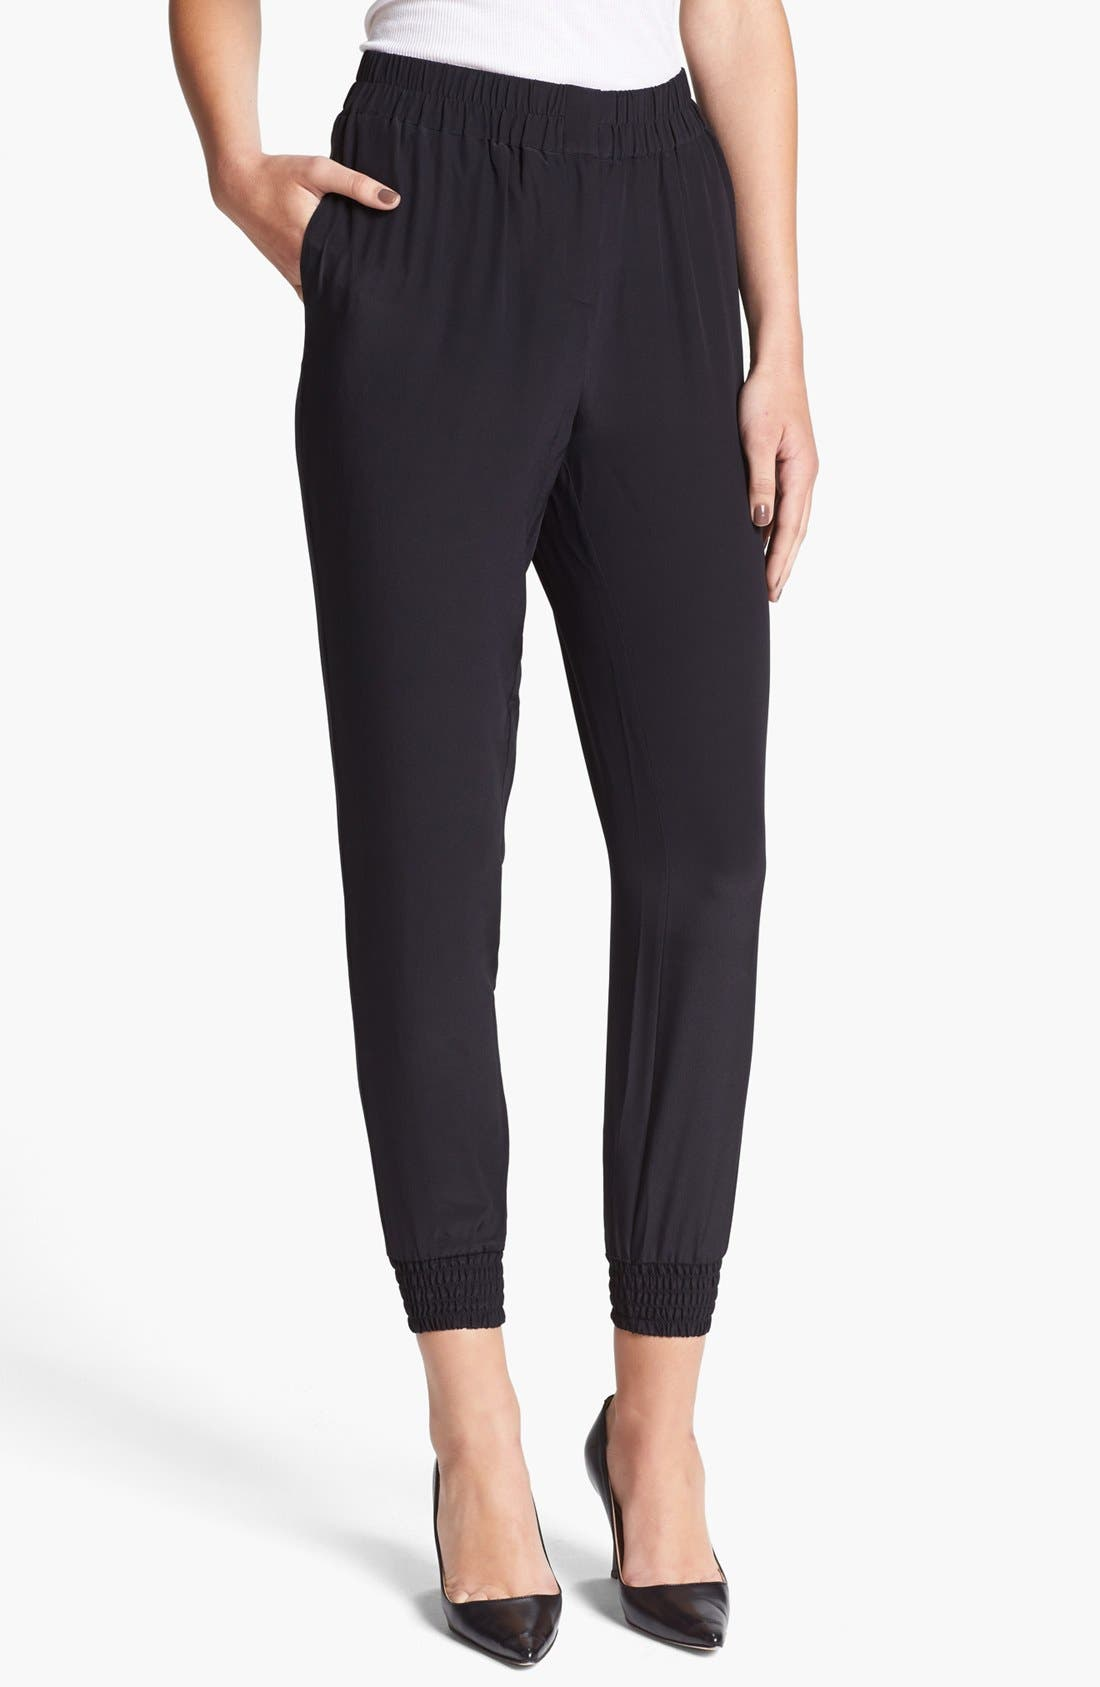 Alternate Image 1 Selected - Ted Baker London 'Jogger' Pants